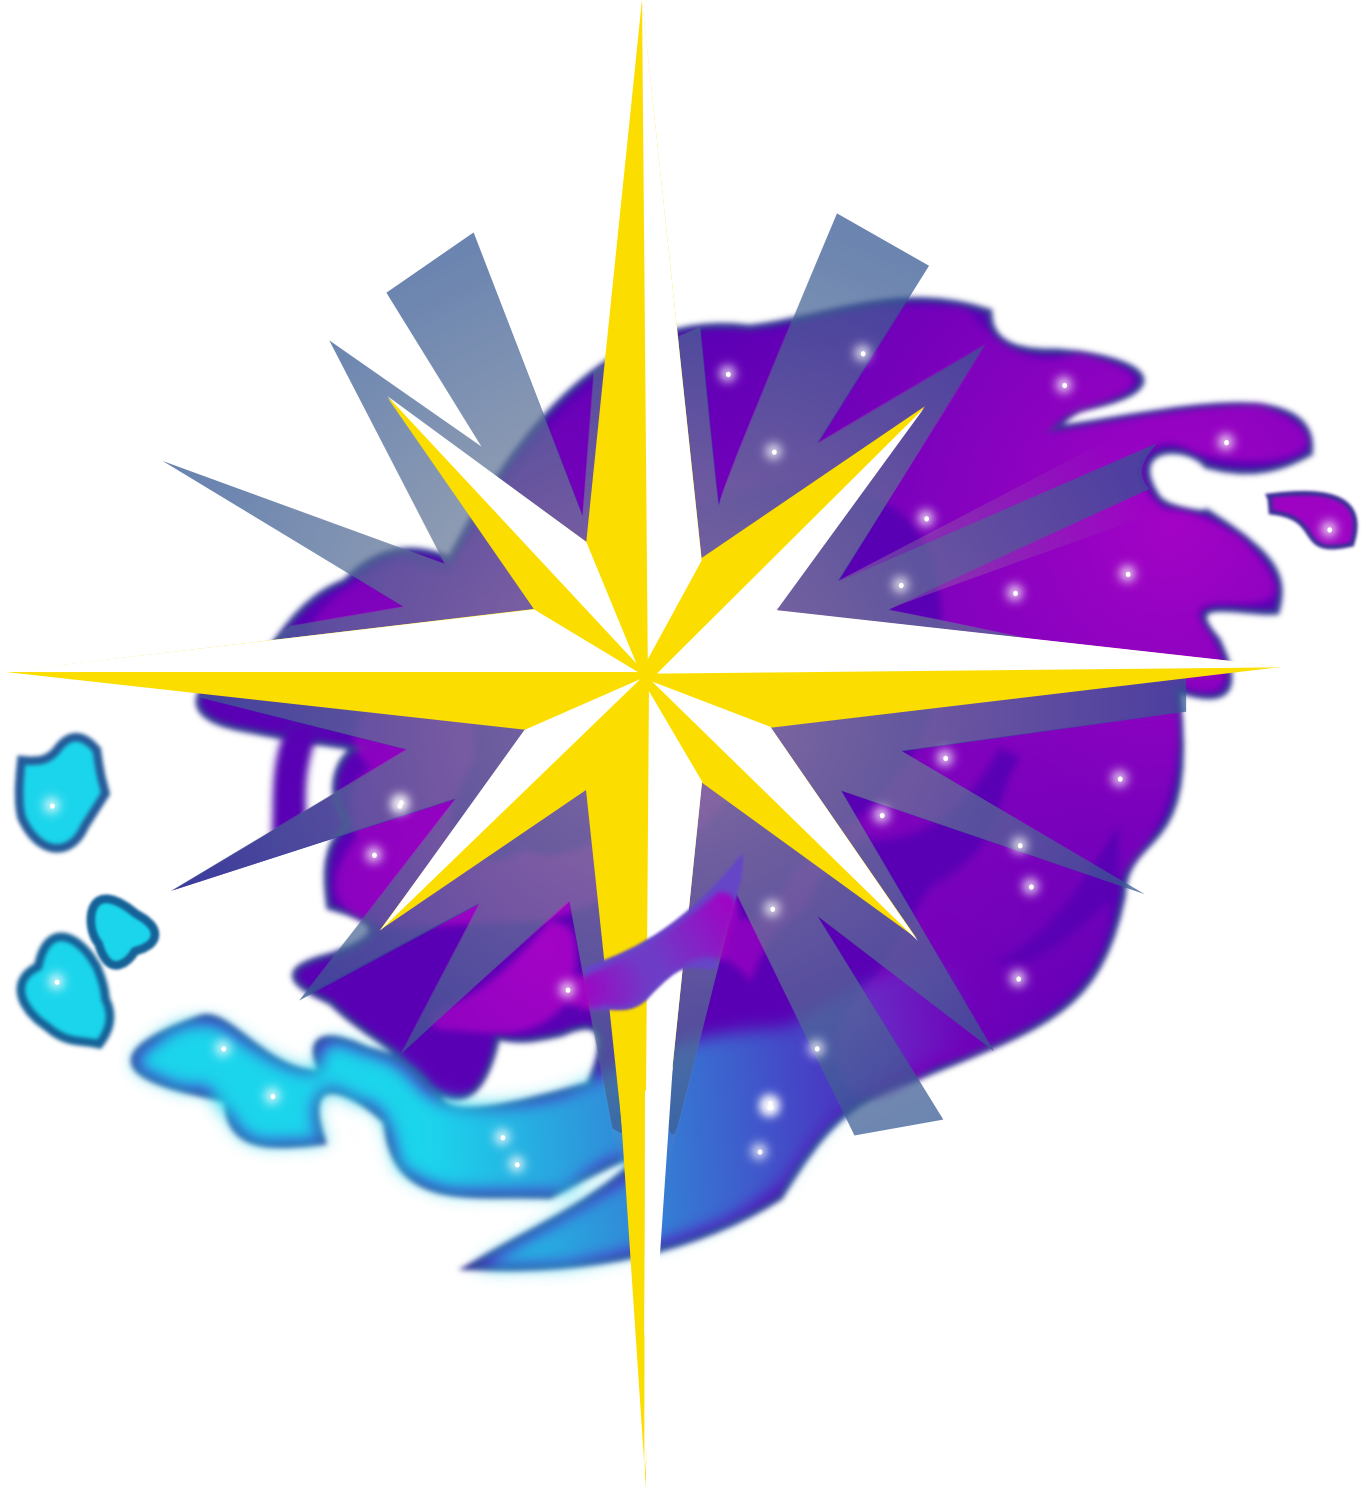 Starry night s mark. Mail clipart cutie